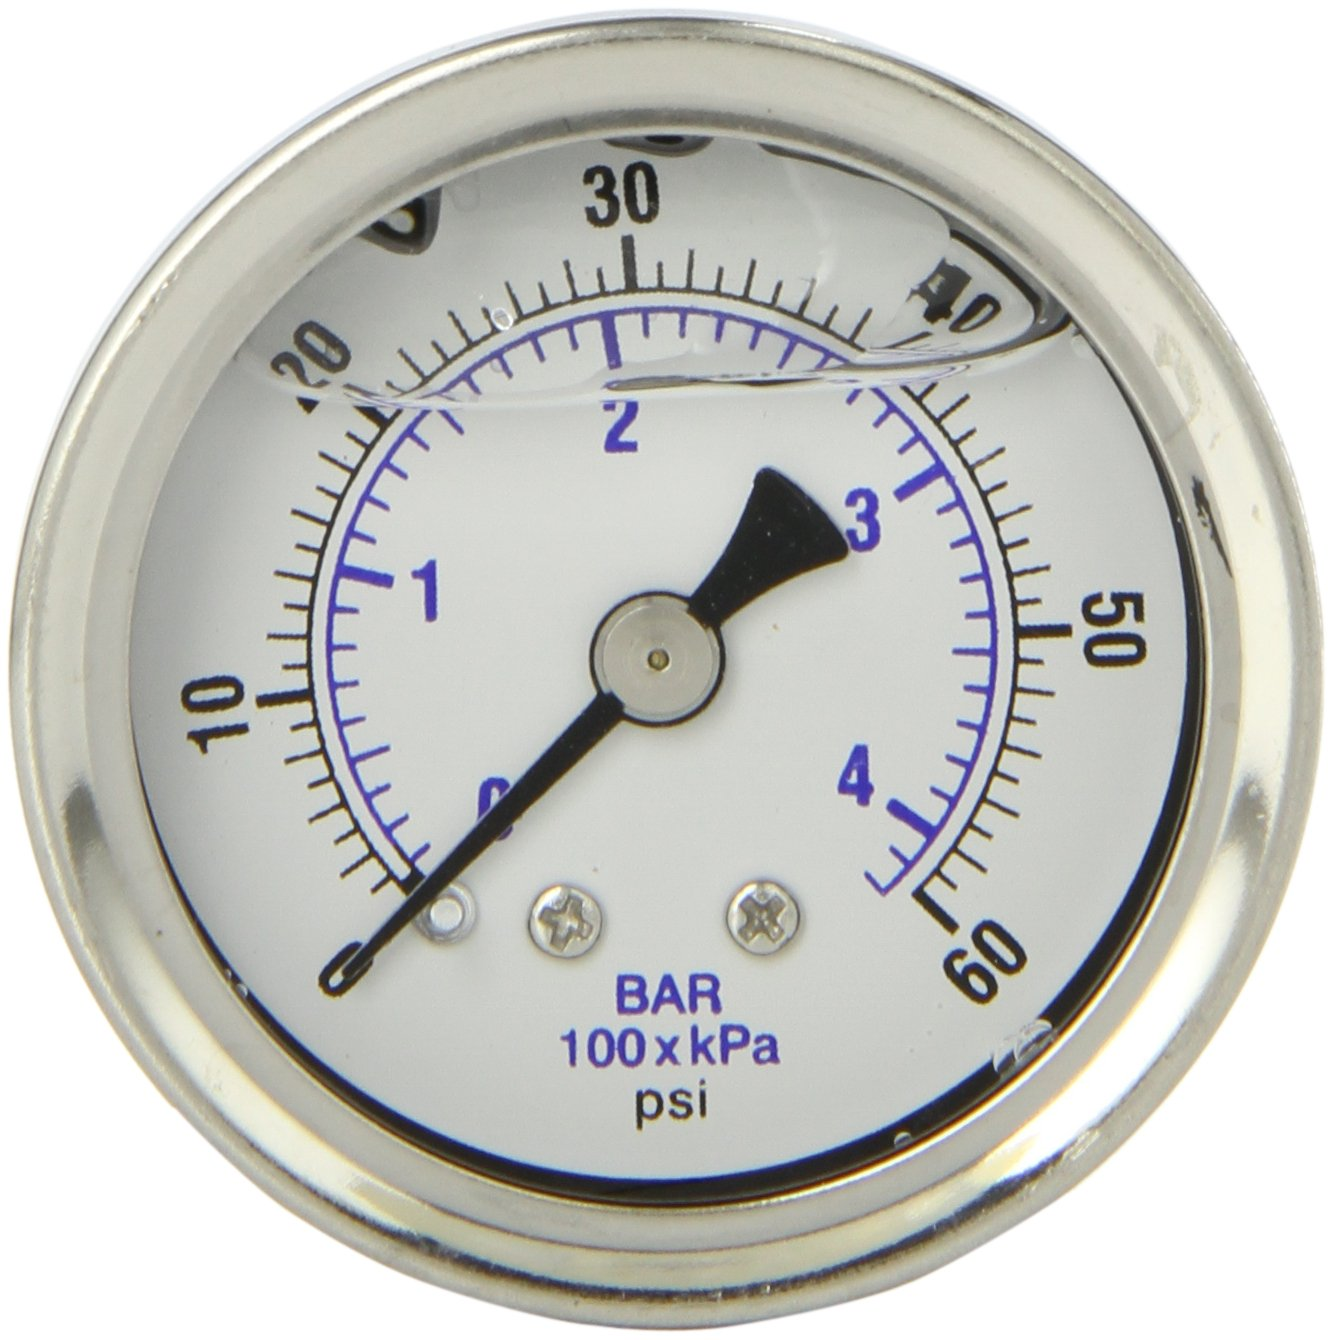 PIC Gauge 202L 158D 1.5 Dial 0 60 psi Range 1 8 Male NPT Connection Size Center Back Mount Glycerine Filled Pressure Gauge with a Stainless Steel Case Brass Internals Stainless Steel Bezel and Polycarbonate Lens